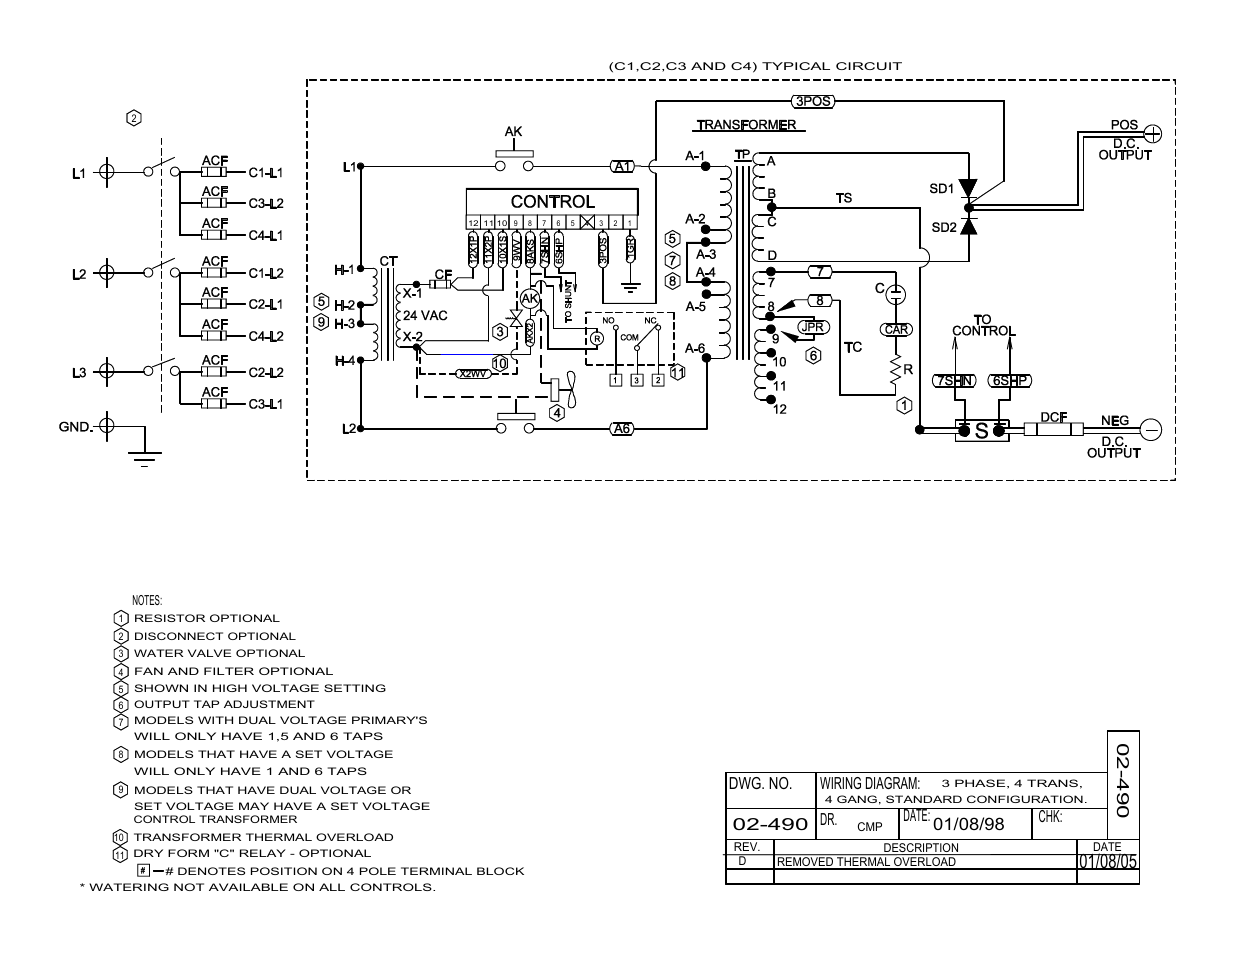 Dwg. no. wiring diagram: dr. date: chk | Exide Technologies Industrial Battery  Charger S47-0079 User Manual | Page 20 / 20